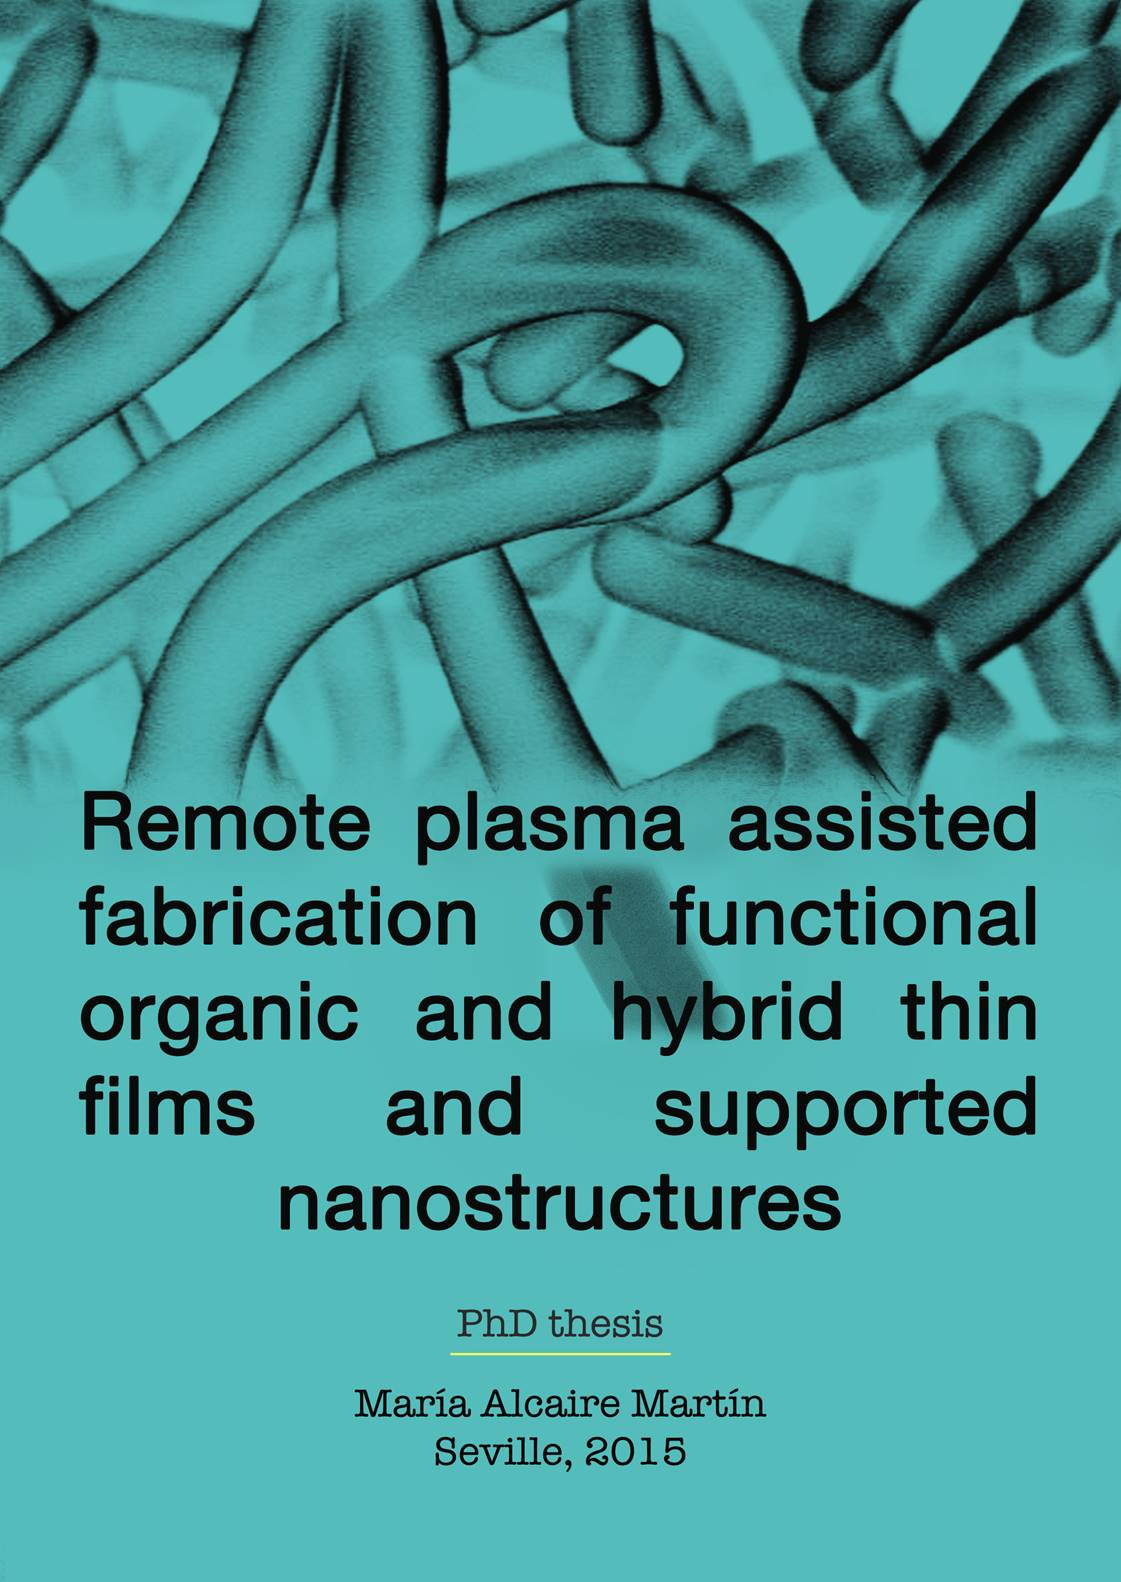 Remote plasma assisted fabrication of functional organic and hybrid thin films and supported nanostructures